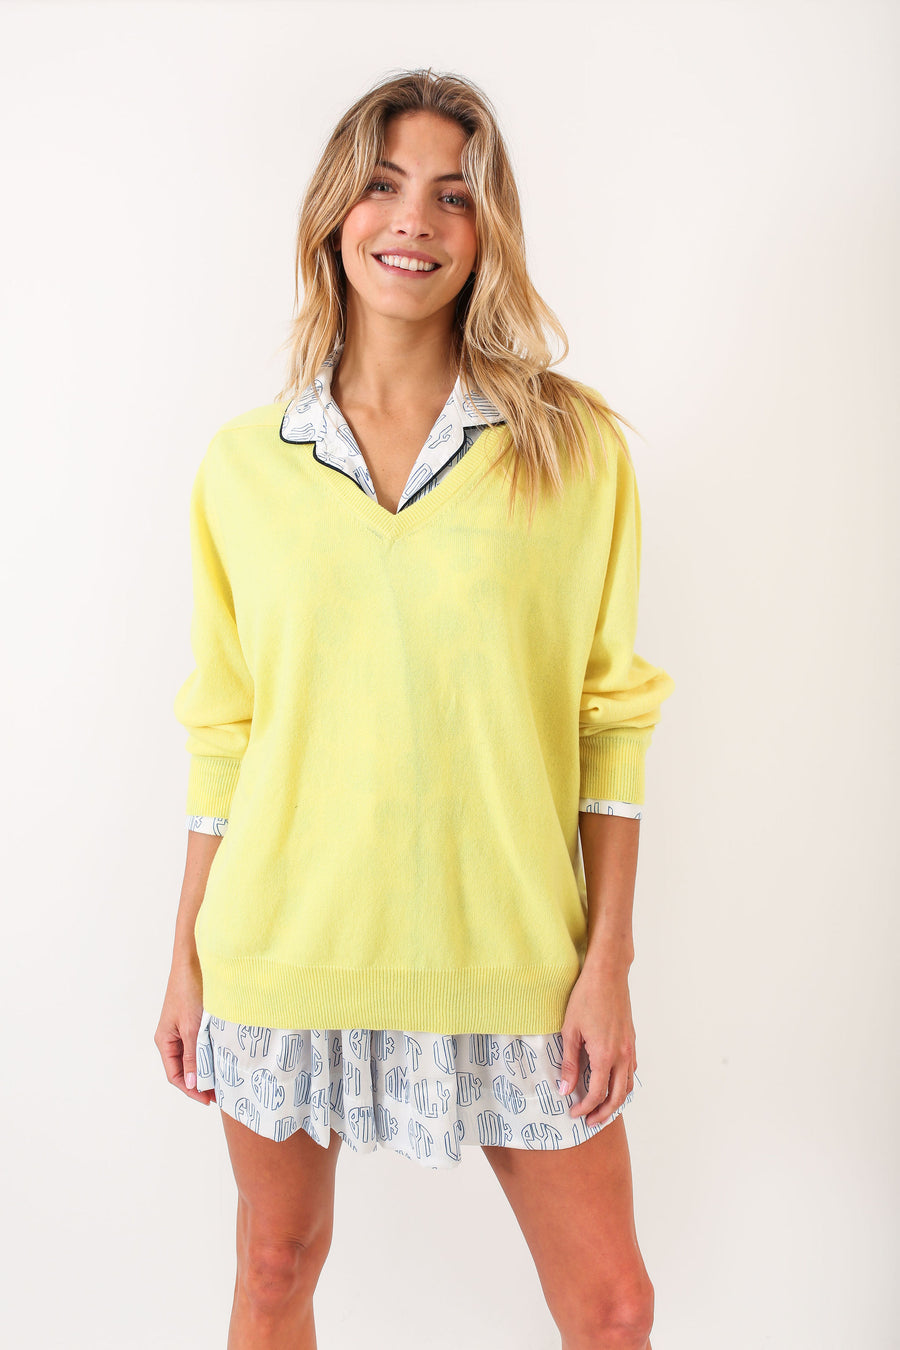 PETE SWEATER YELLOW W/ NAVY AND WHITE STRIPES